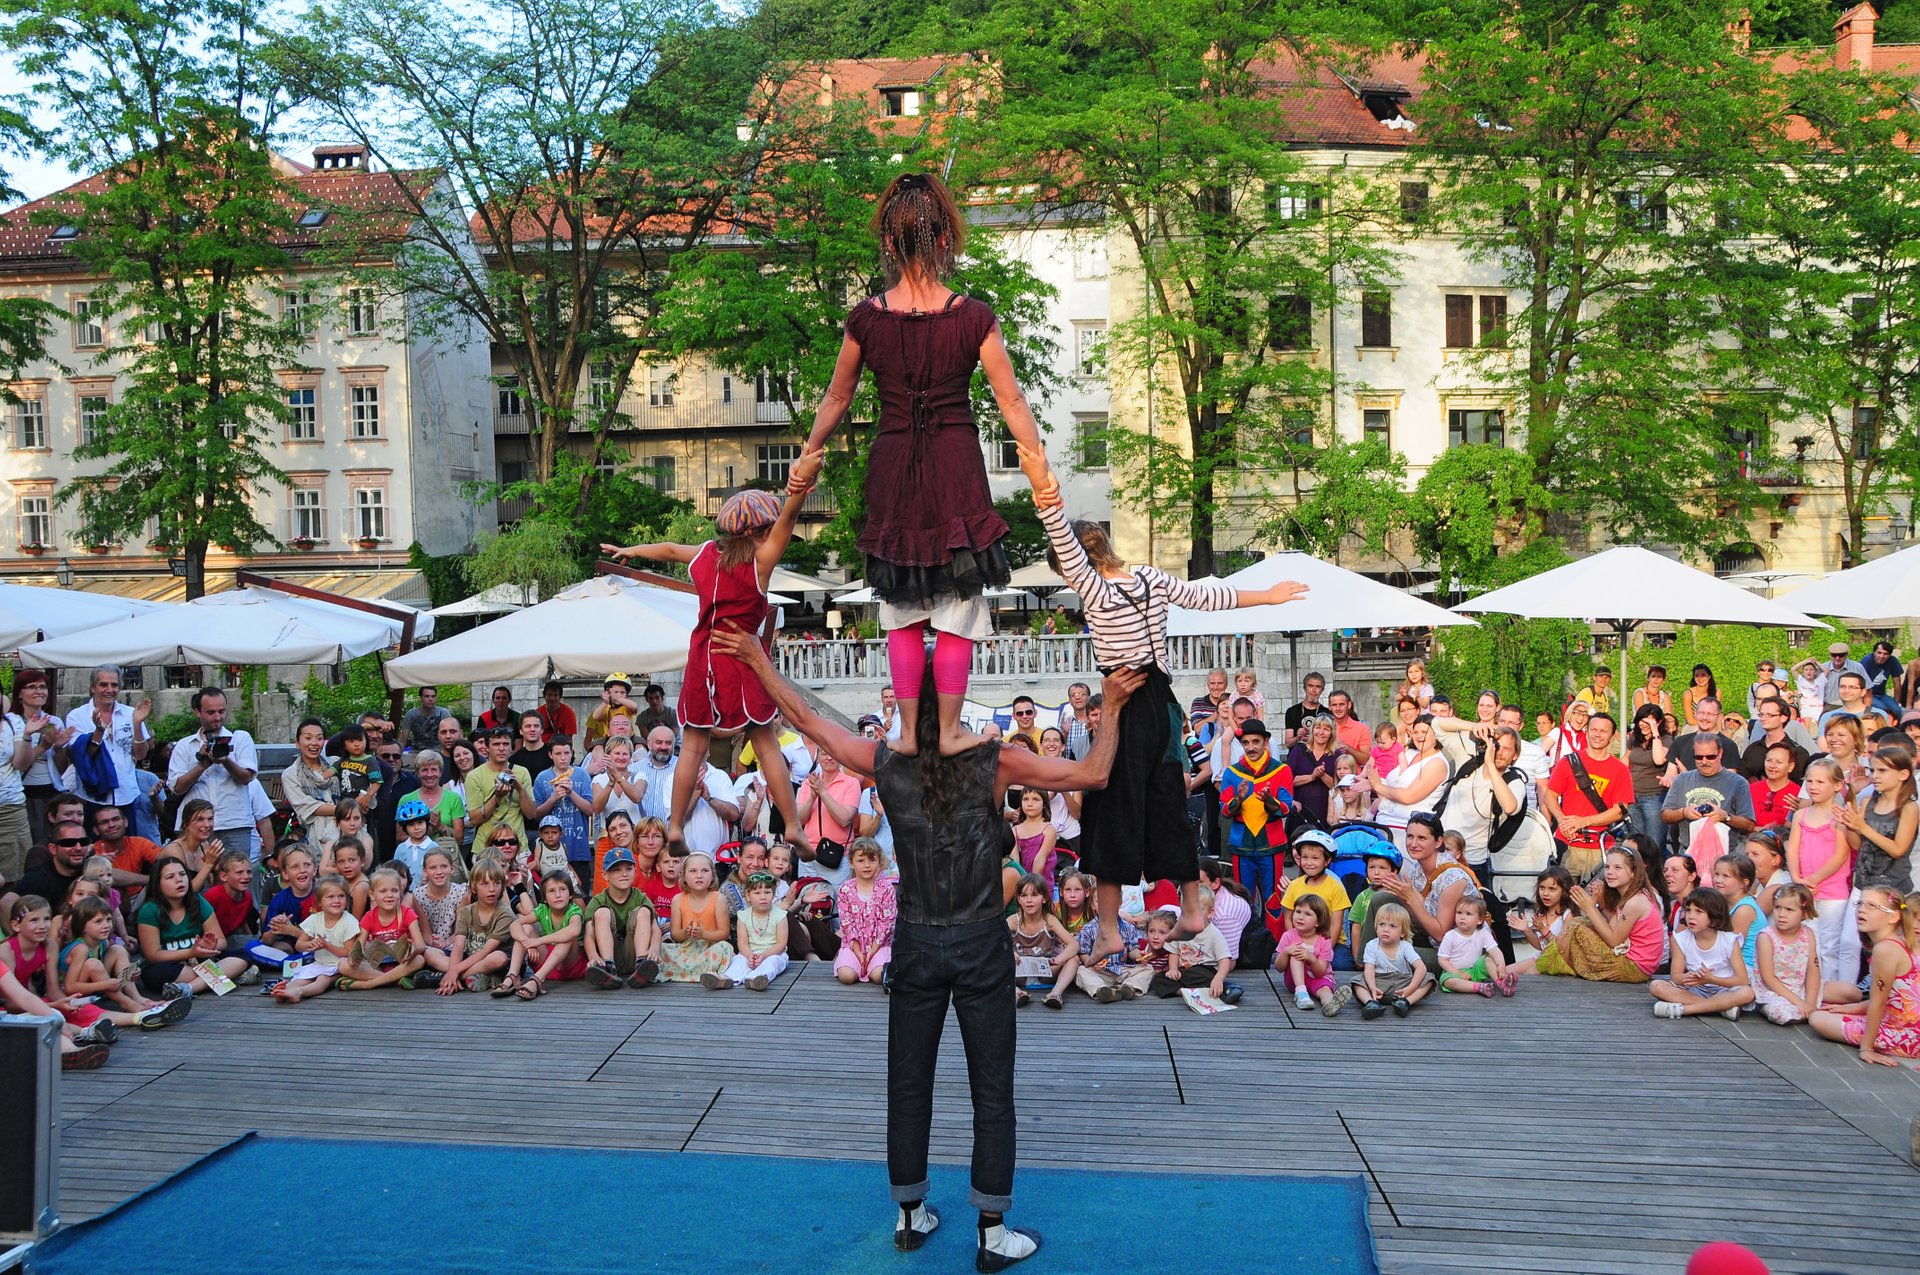 Ana Desetnica International Street Theatre Festival in Slovenia - Best Season 2019